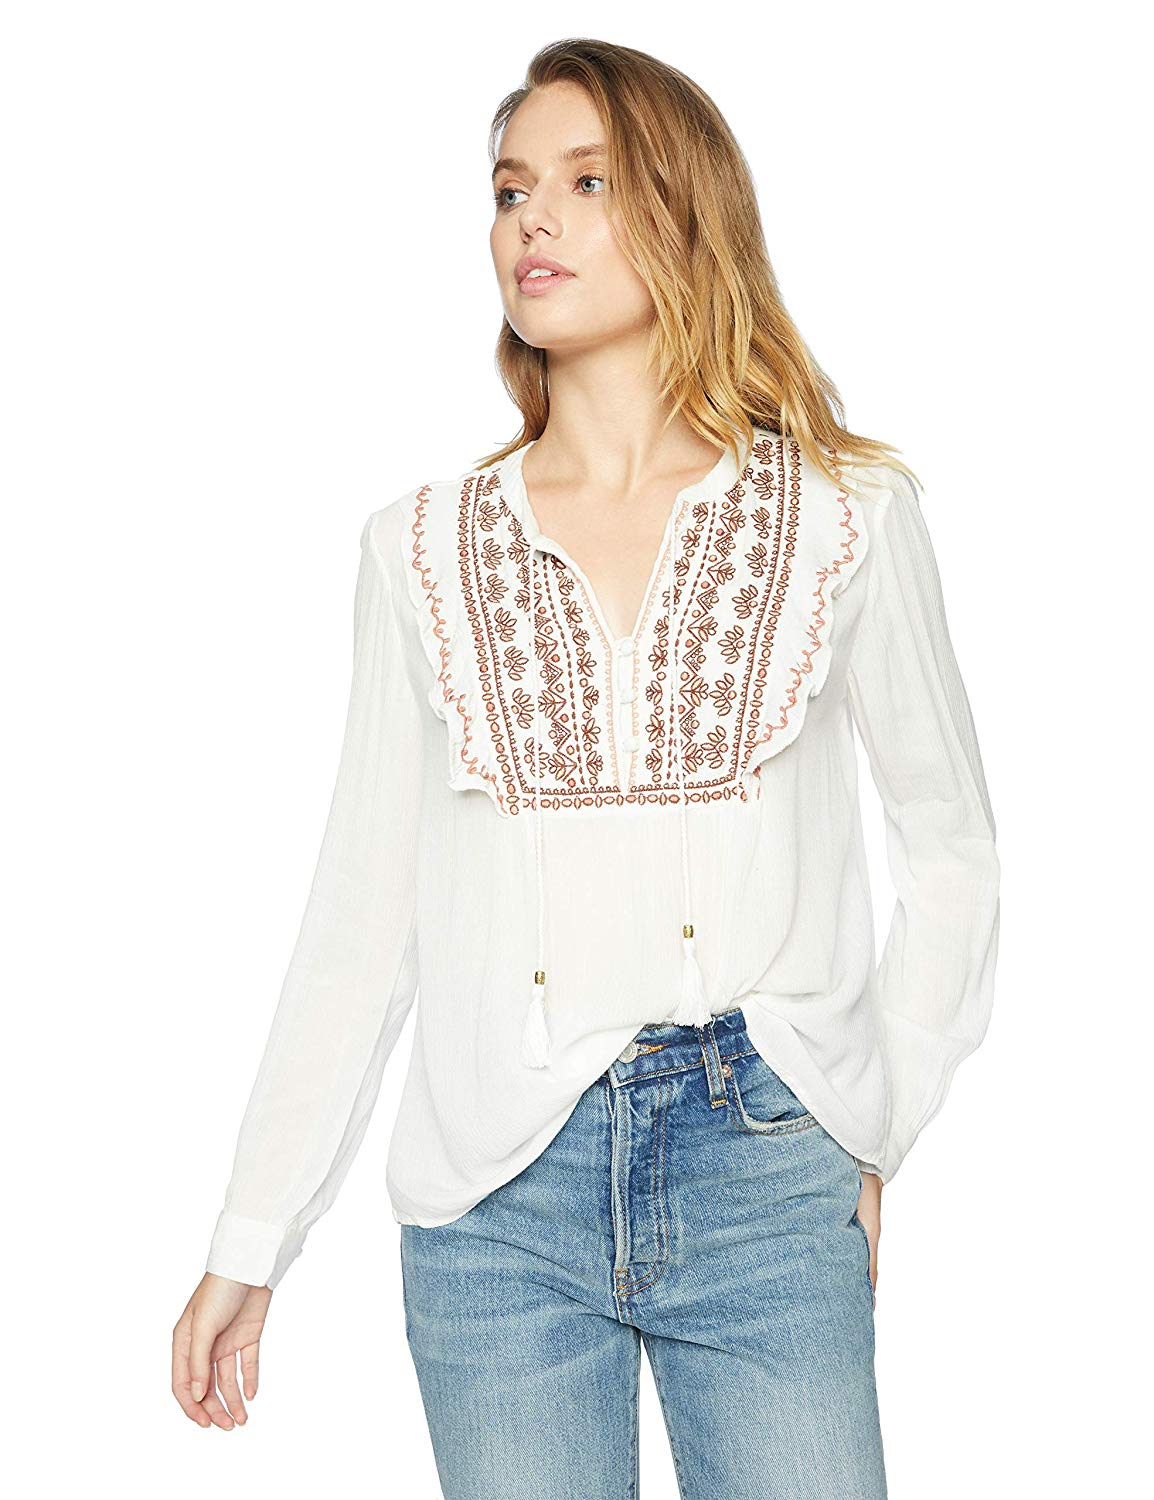 e234c69b061 Get Quotations · Vintage America Blues Women s Juliana Flowy Embroidered  Peasant Top